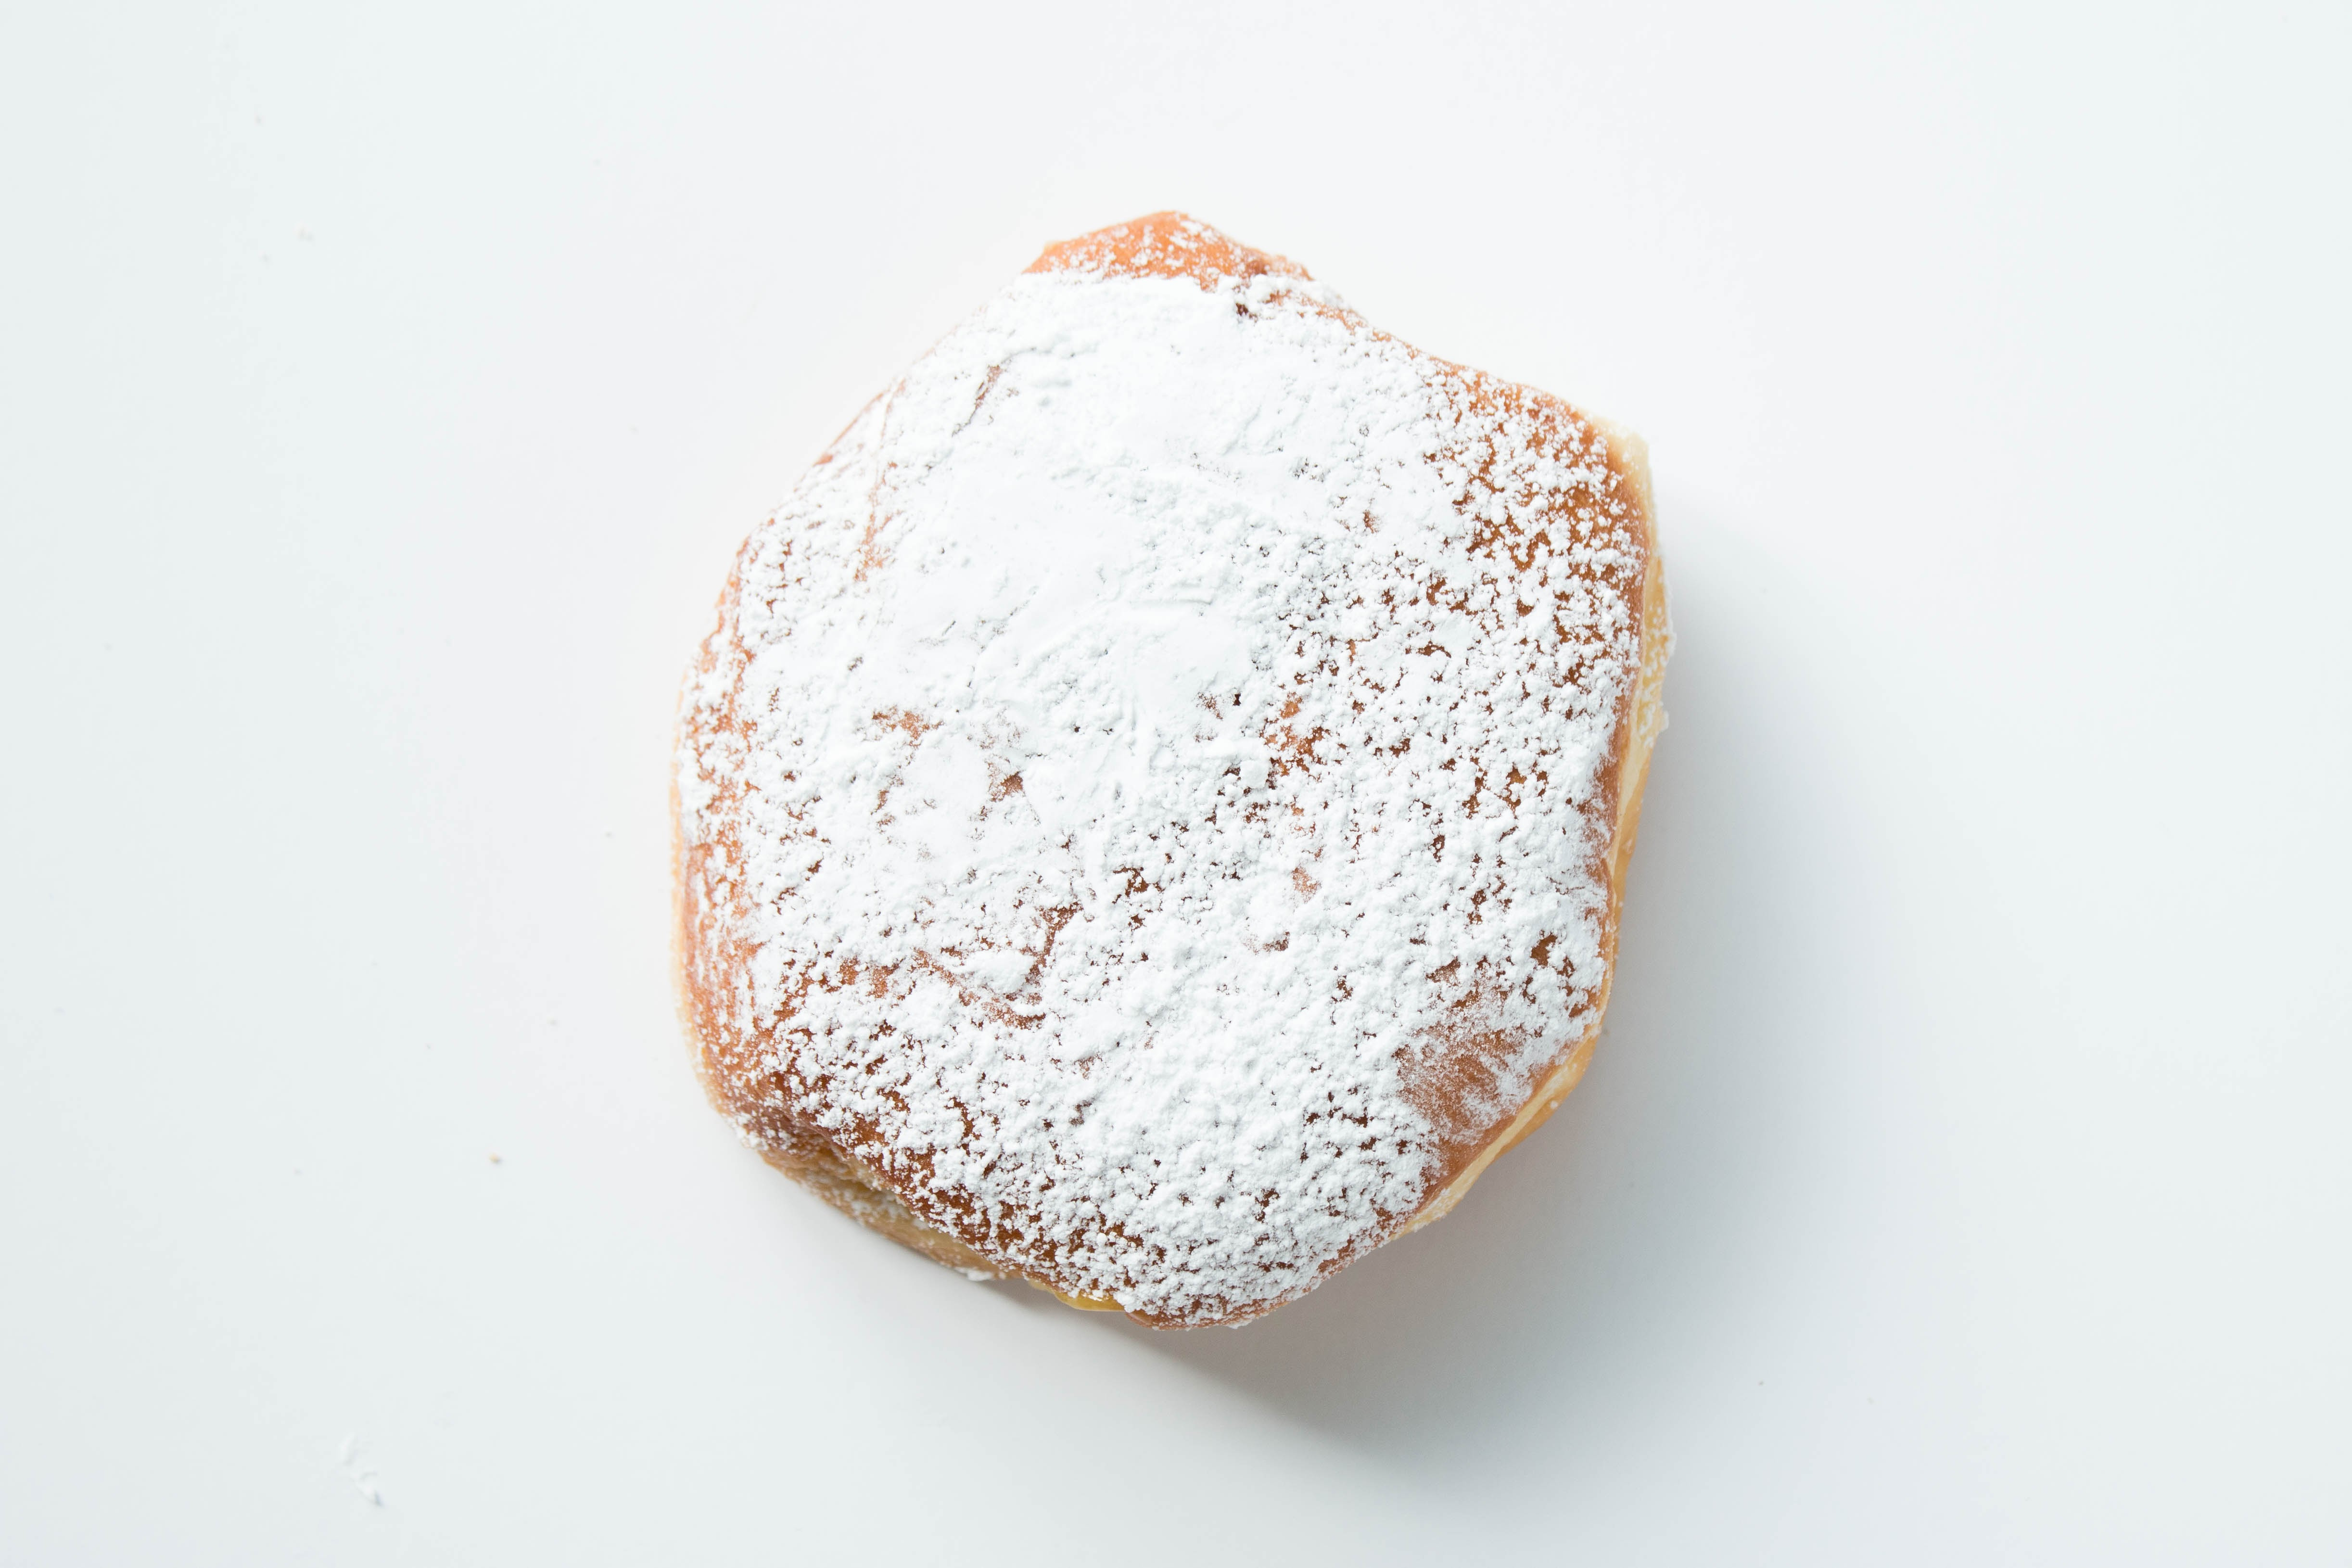 Lemon Filled Bismark